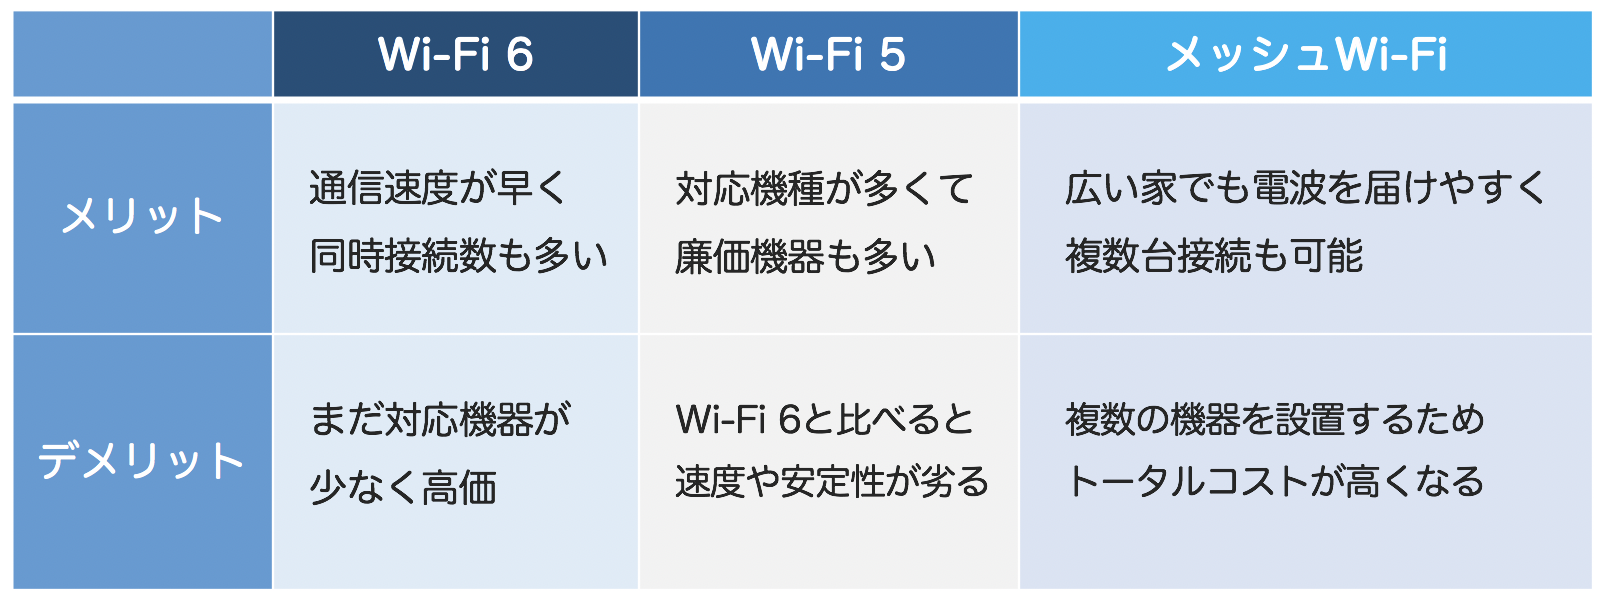 Wi-Fi 6、Wi-Fi 5、メッシュWi-Fiのメリット・デメリット